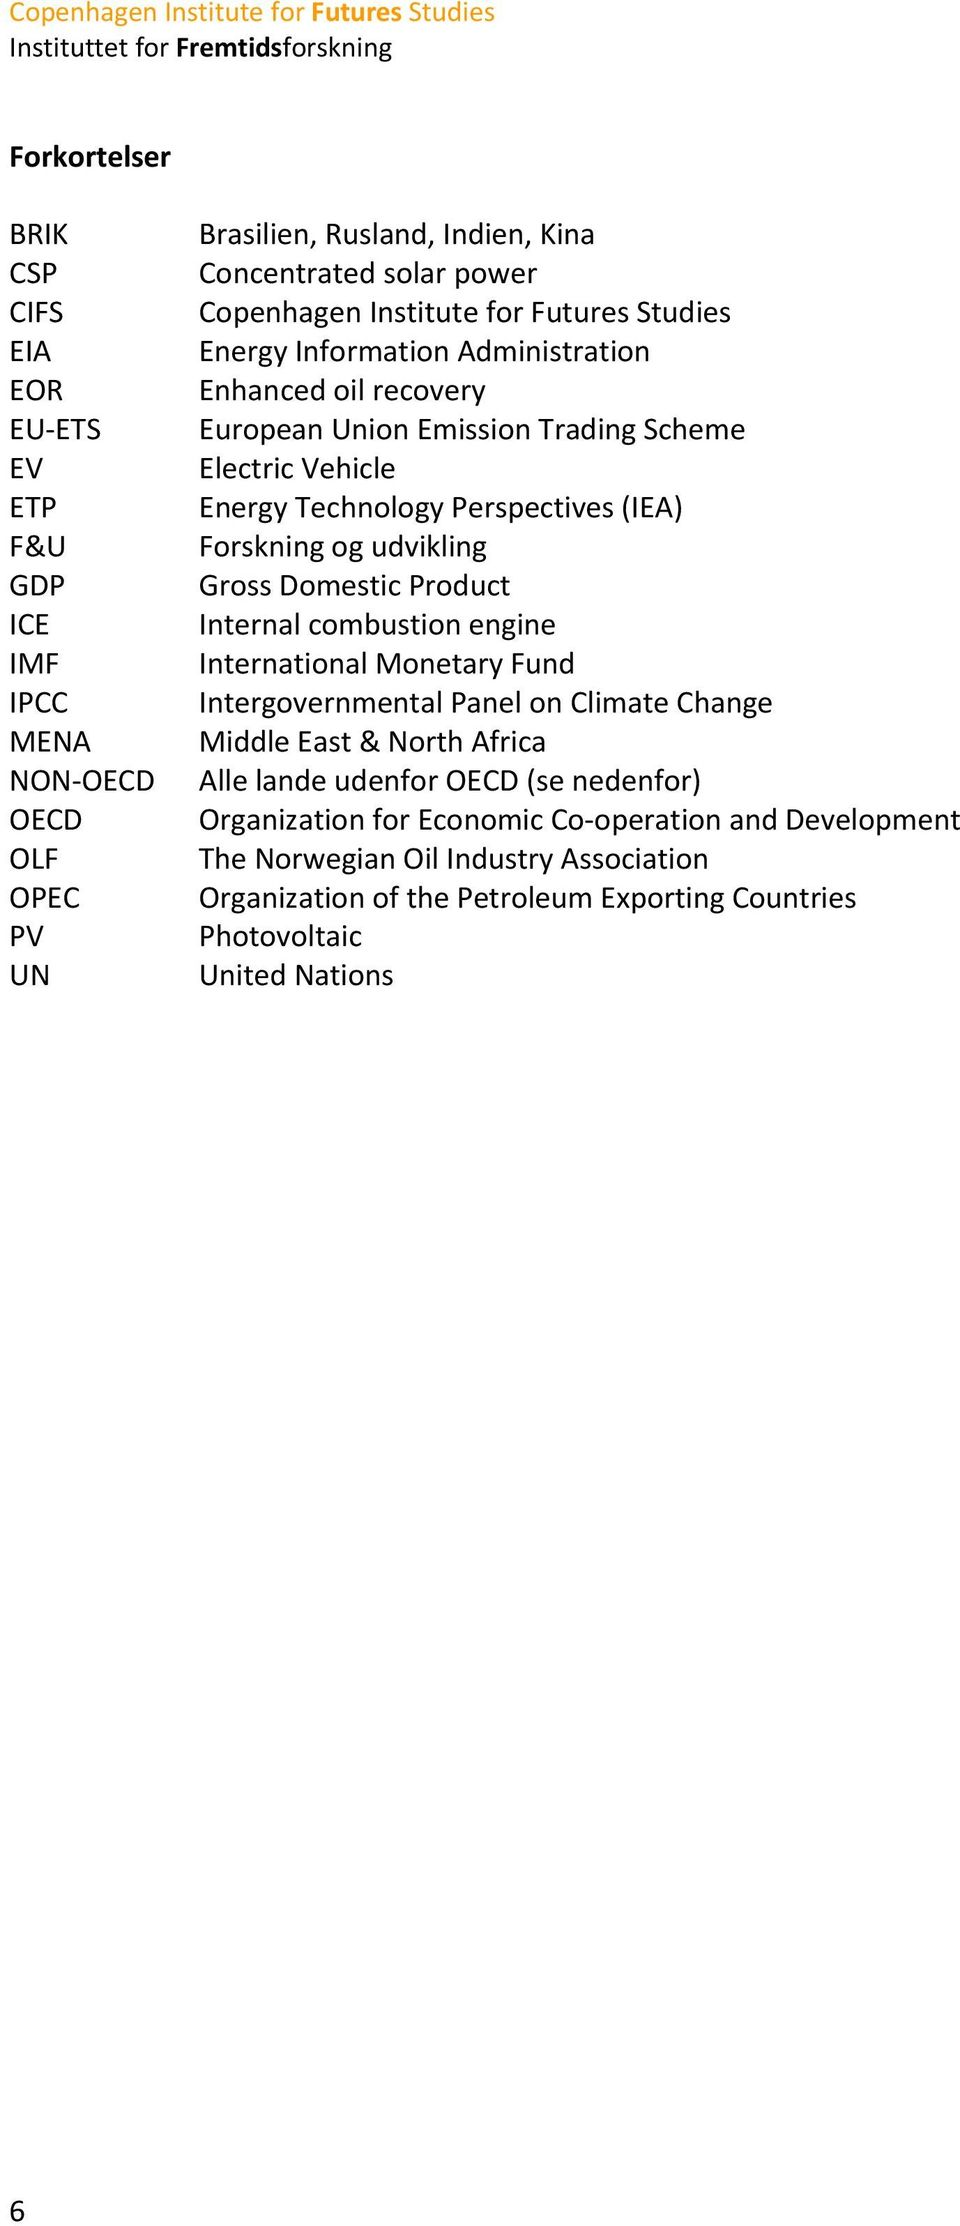 udvikling Gross Domestic Product Internal combustion engine International Monetary Fund Intergovernmental Panel on Climate Change Middle East & North Africa Alle lande udenfor OECD